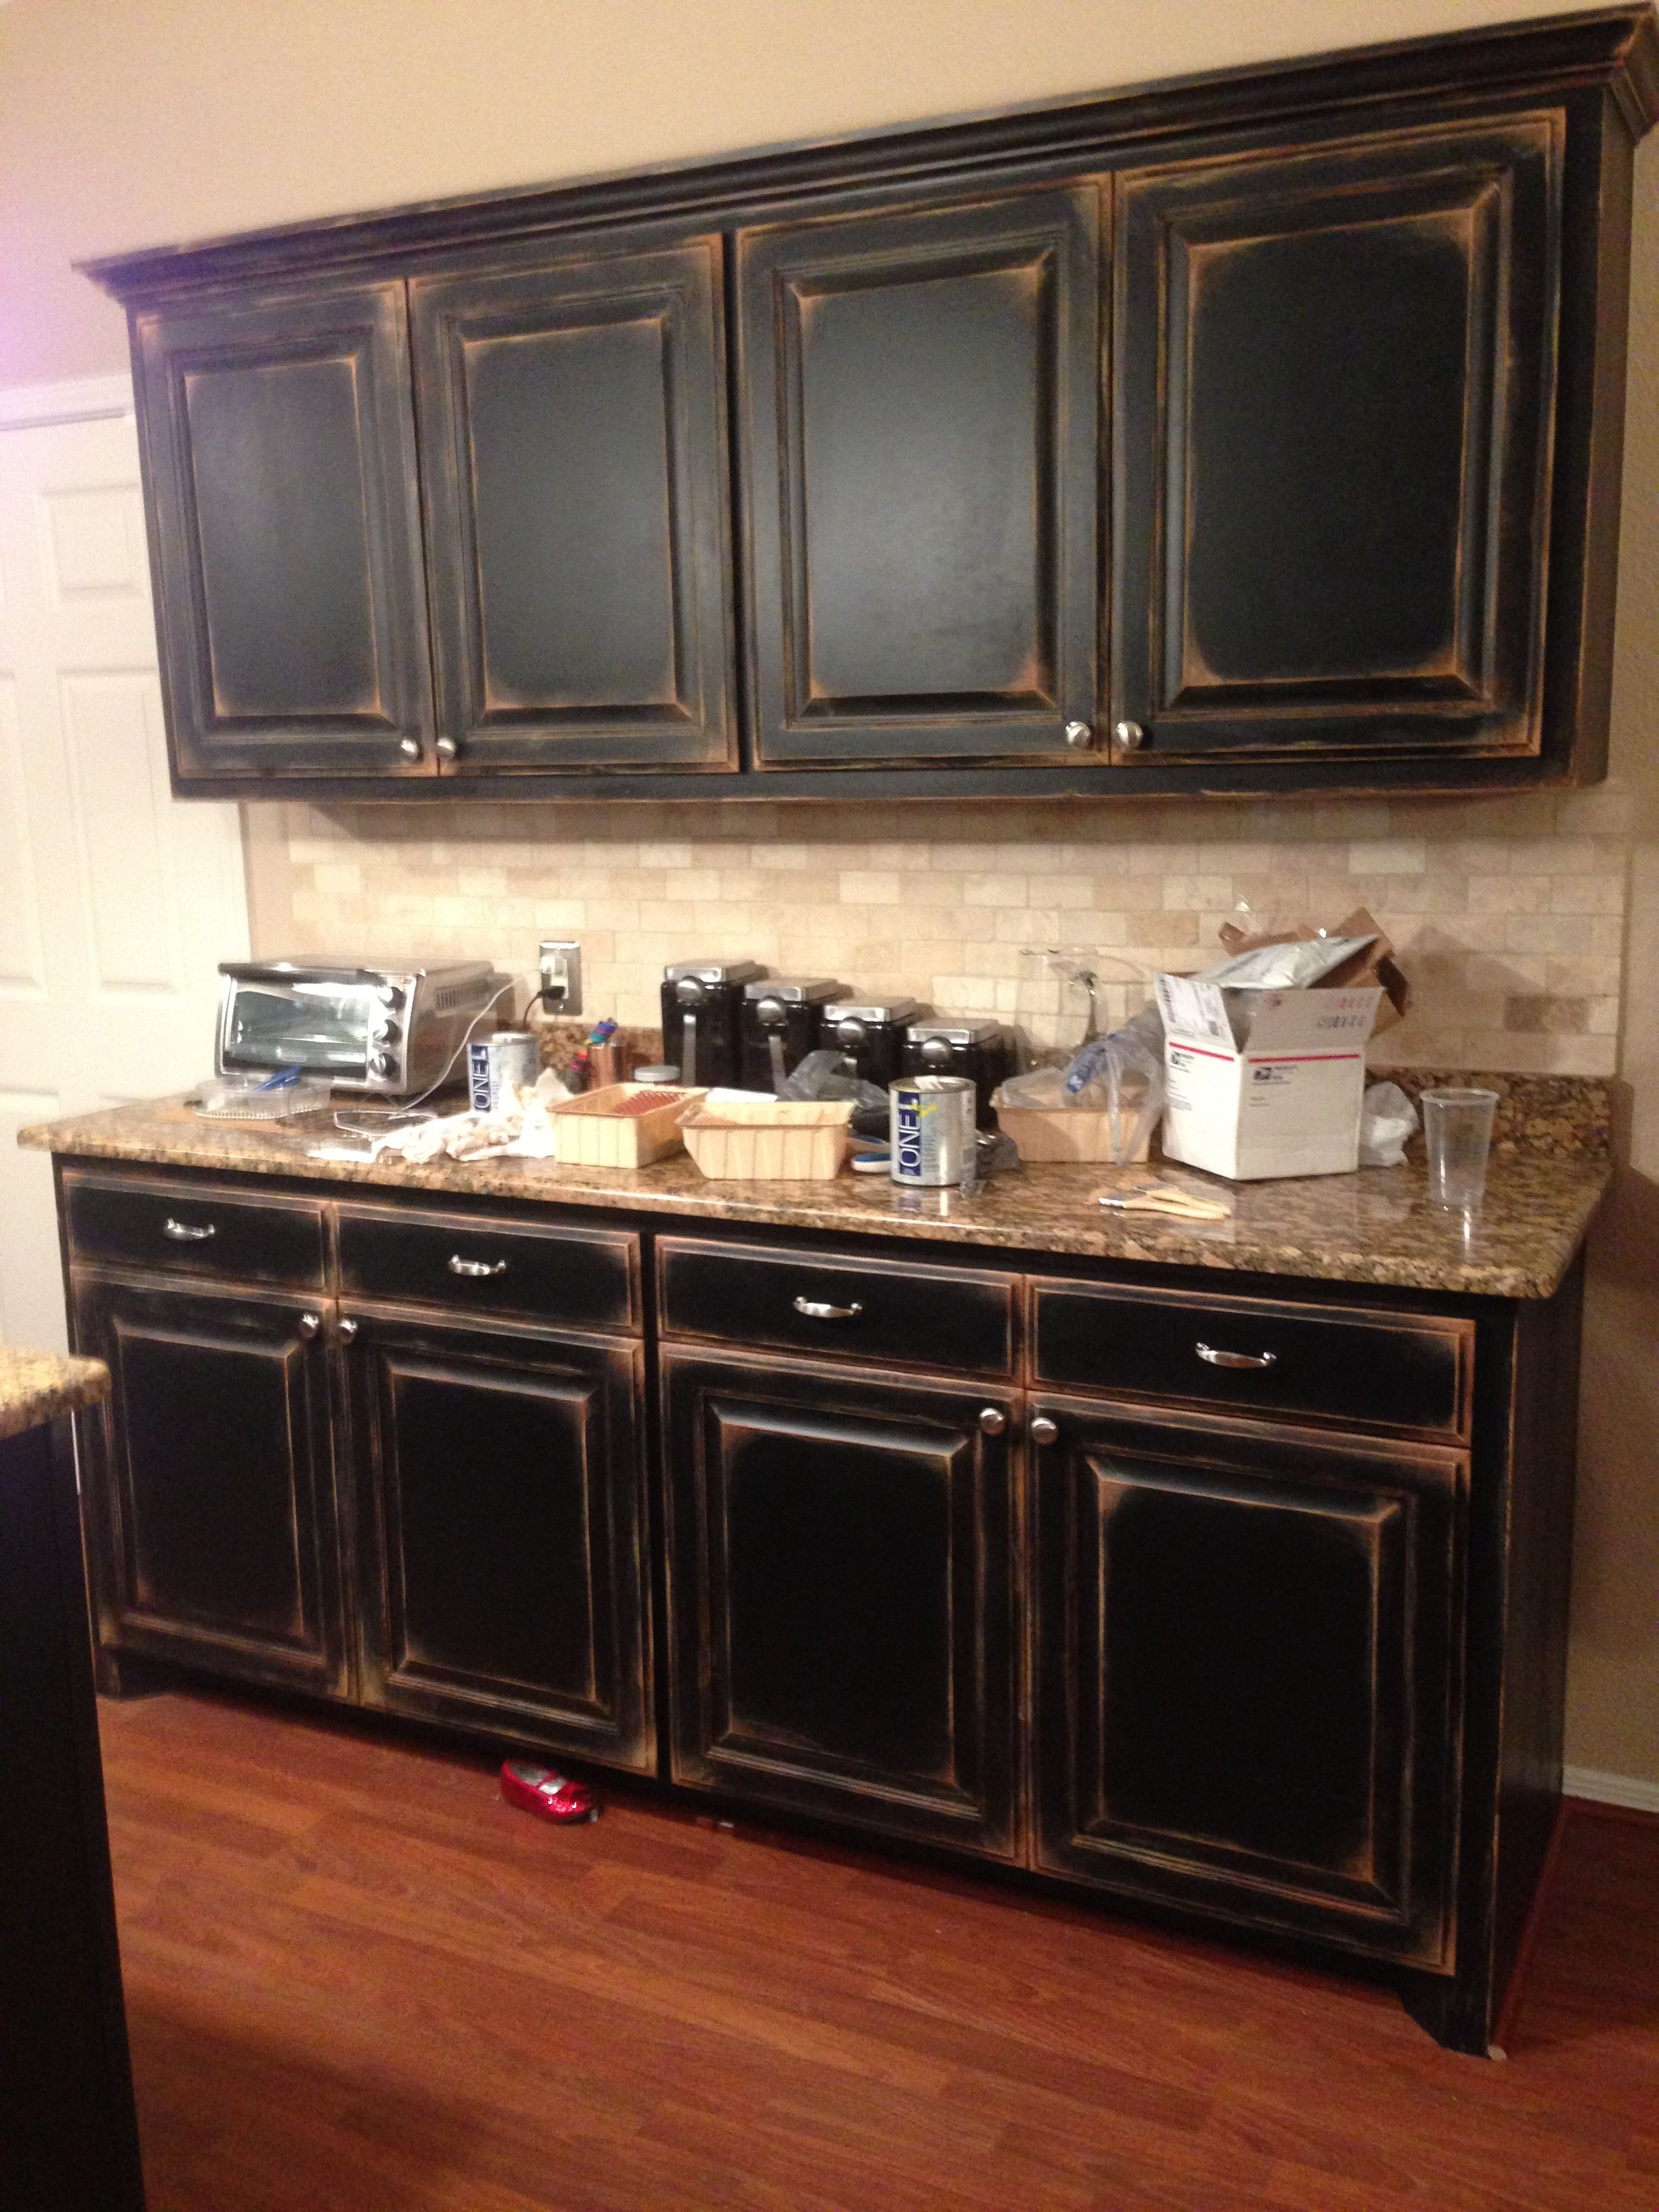 Painting furniture black distressed - Black Cabinets With Faux Distressing Used 3 Different Colors Of Flat Paint To Create This